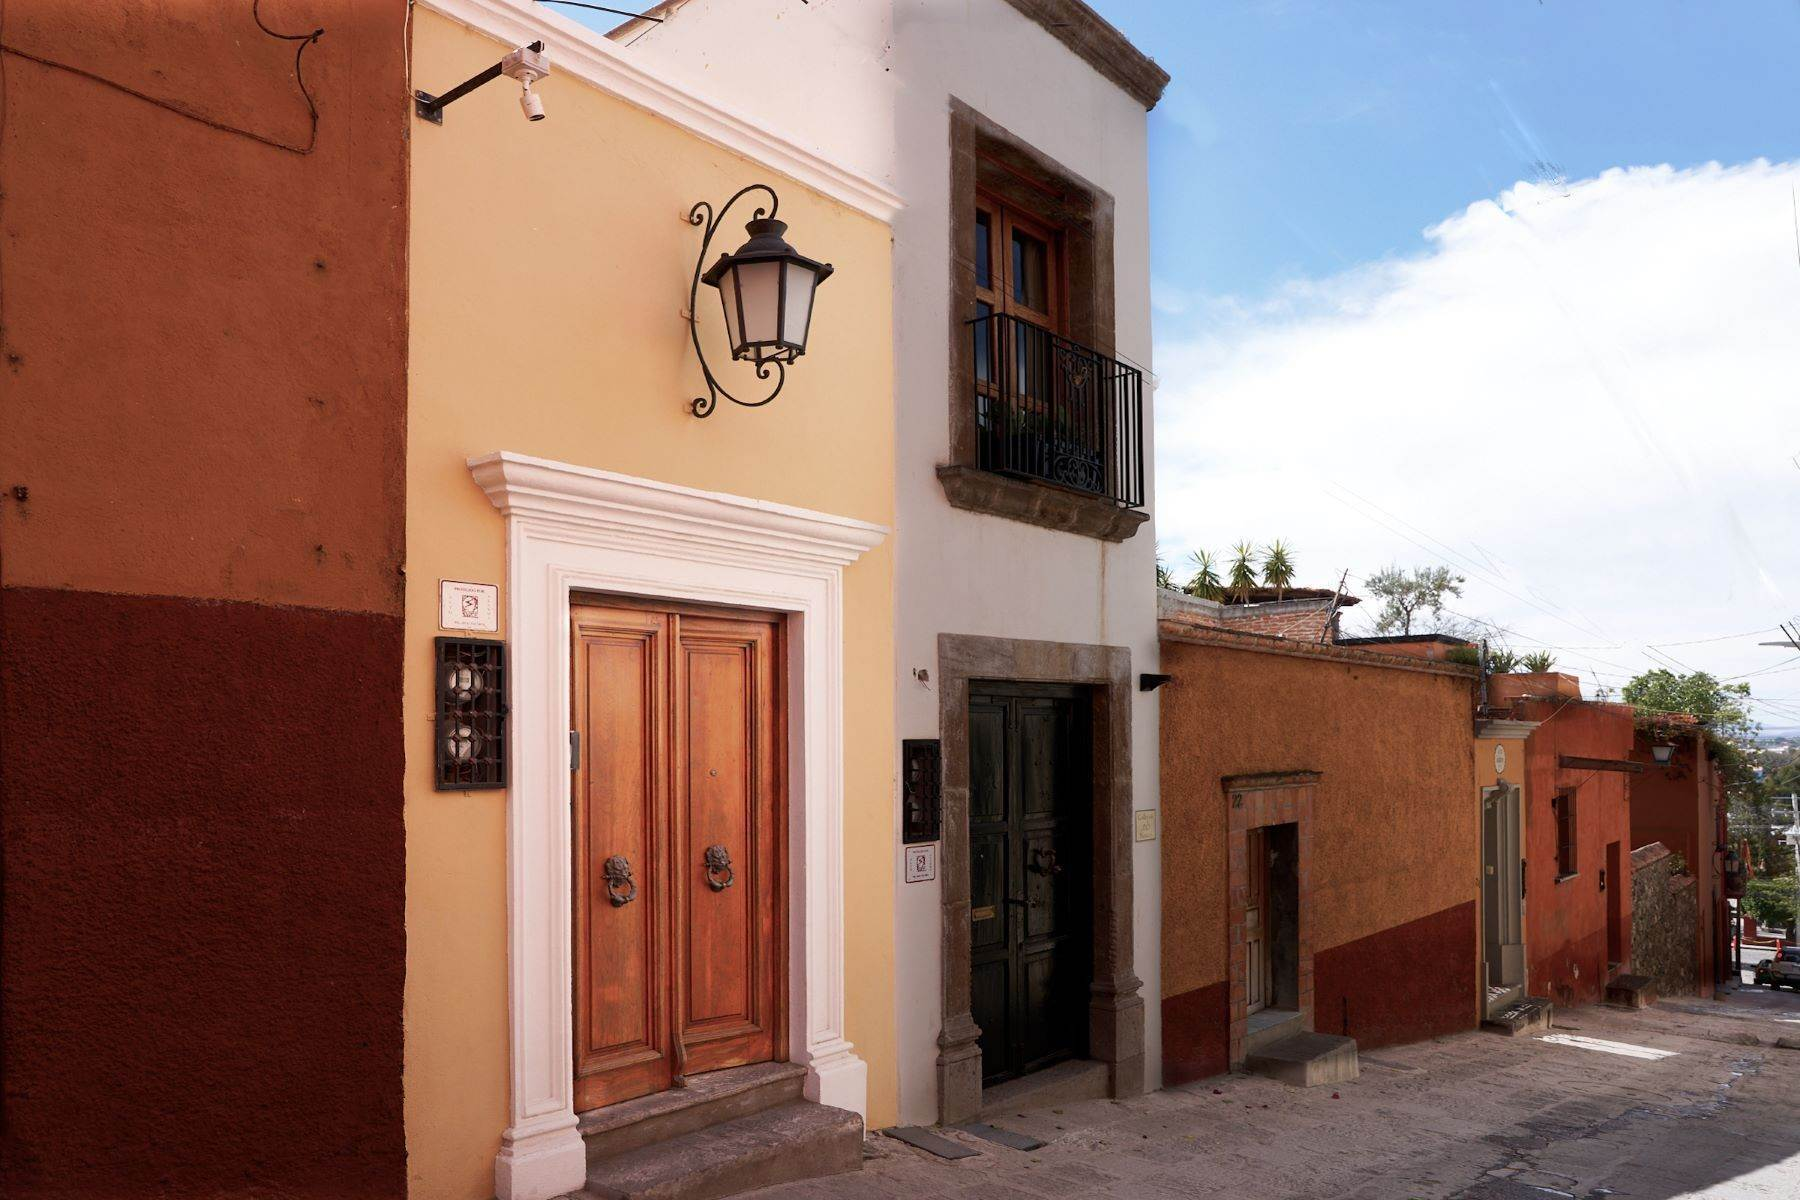 Single Family Homes for Sale at Casa Bendita Callejon Blanco 18 San Miguel De Allende, Guanajuato 37700 Mexico